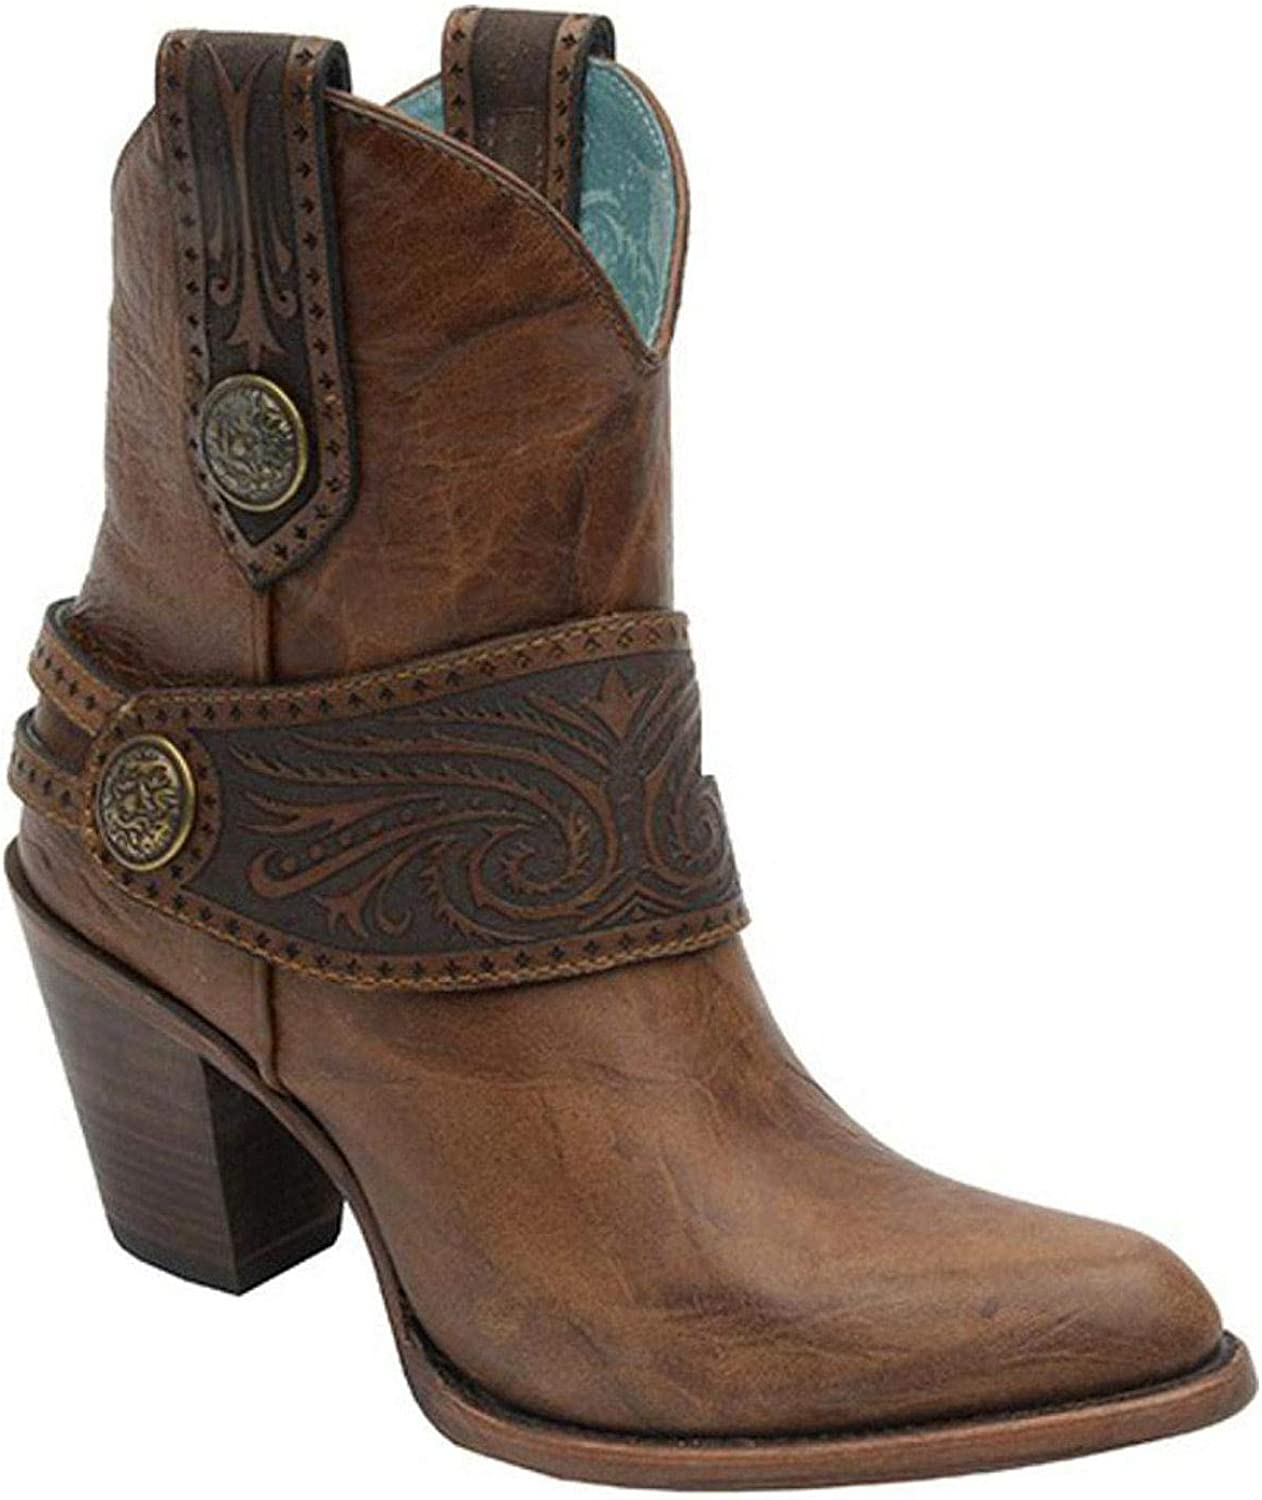 CORRAL Women's Engraved Harness Boot - C2907